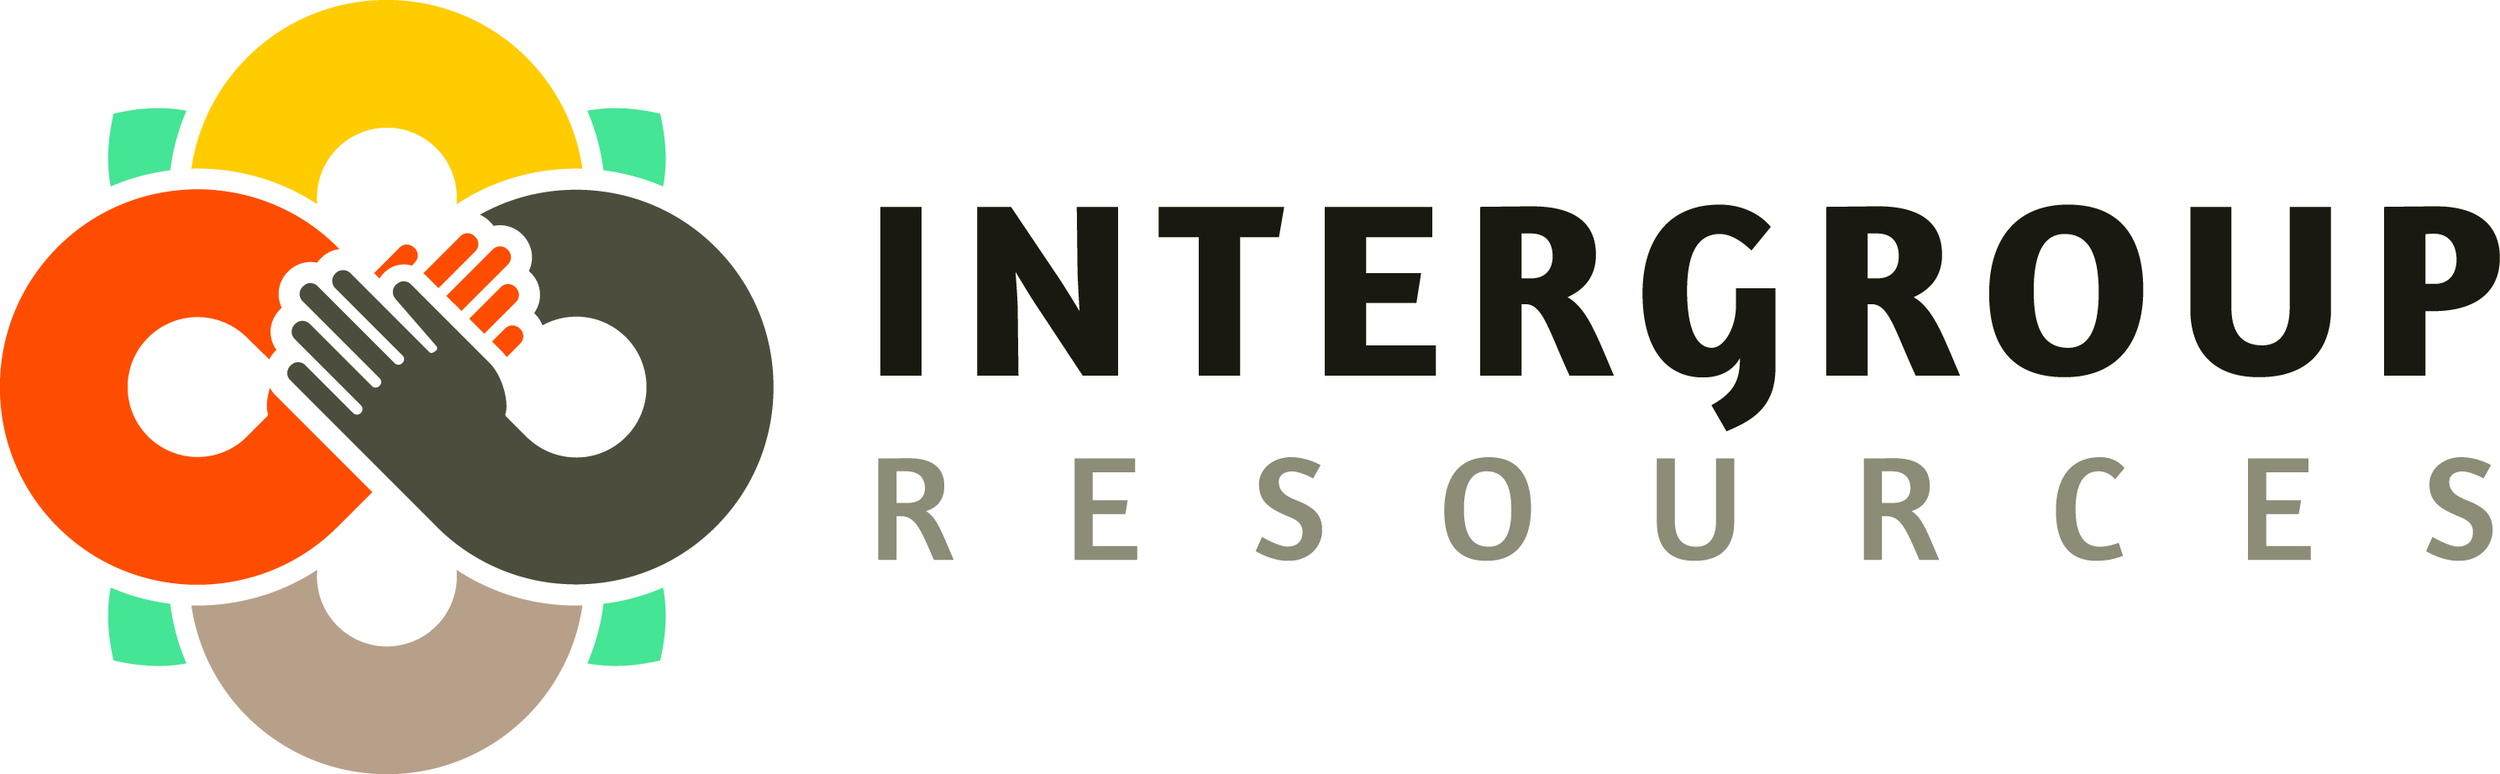 Stuesse - Intergroup Resources logo.png